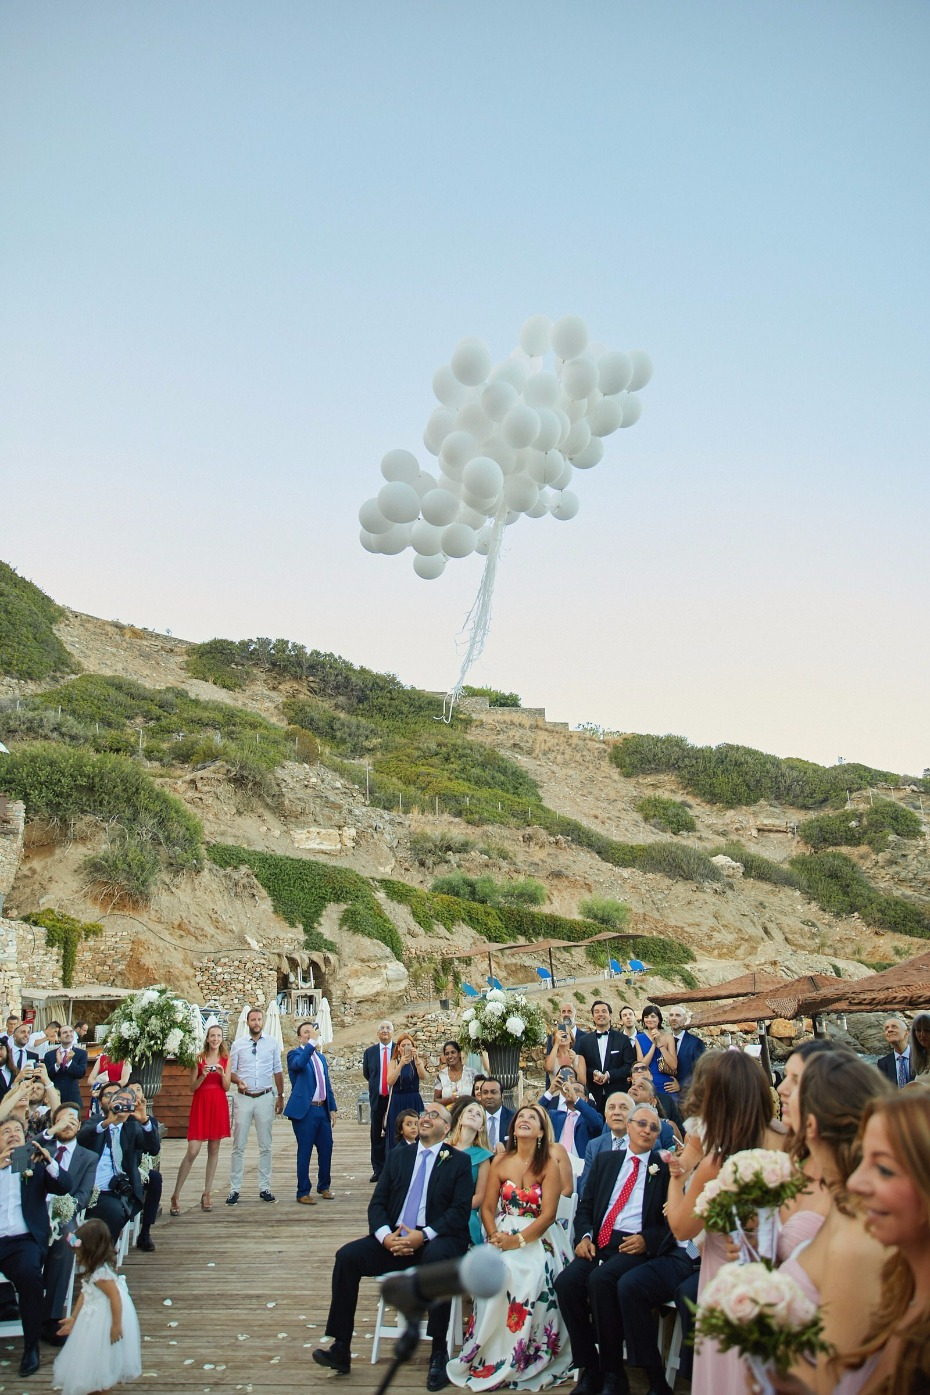 white wedding balloon release